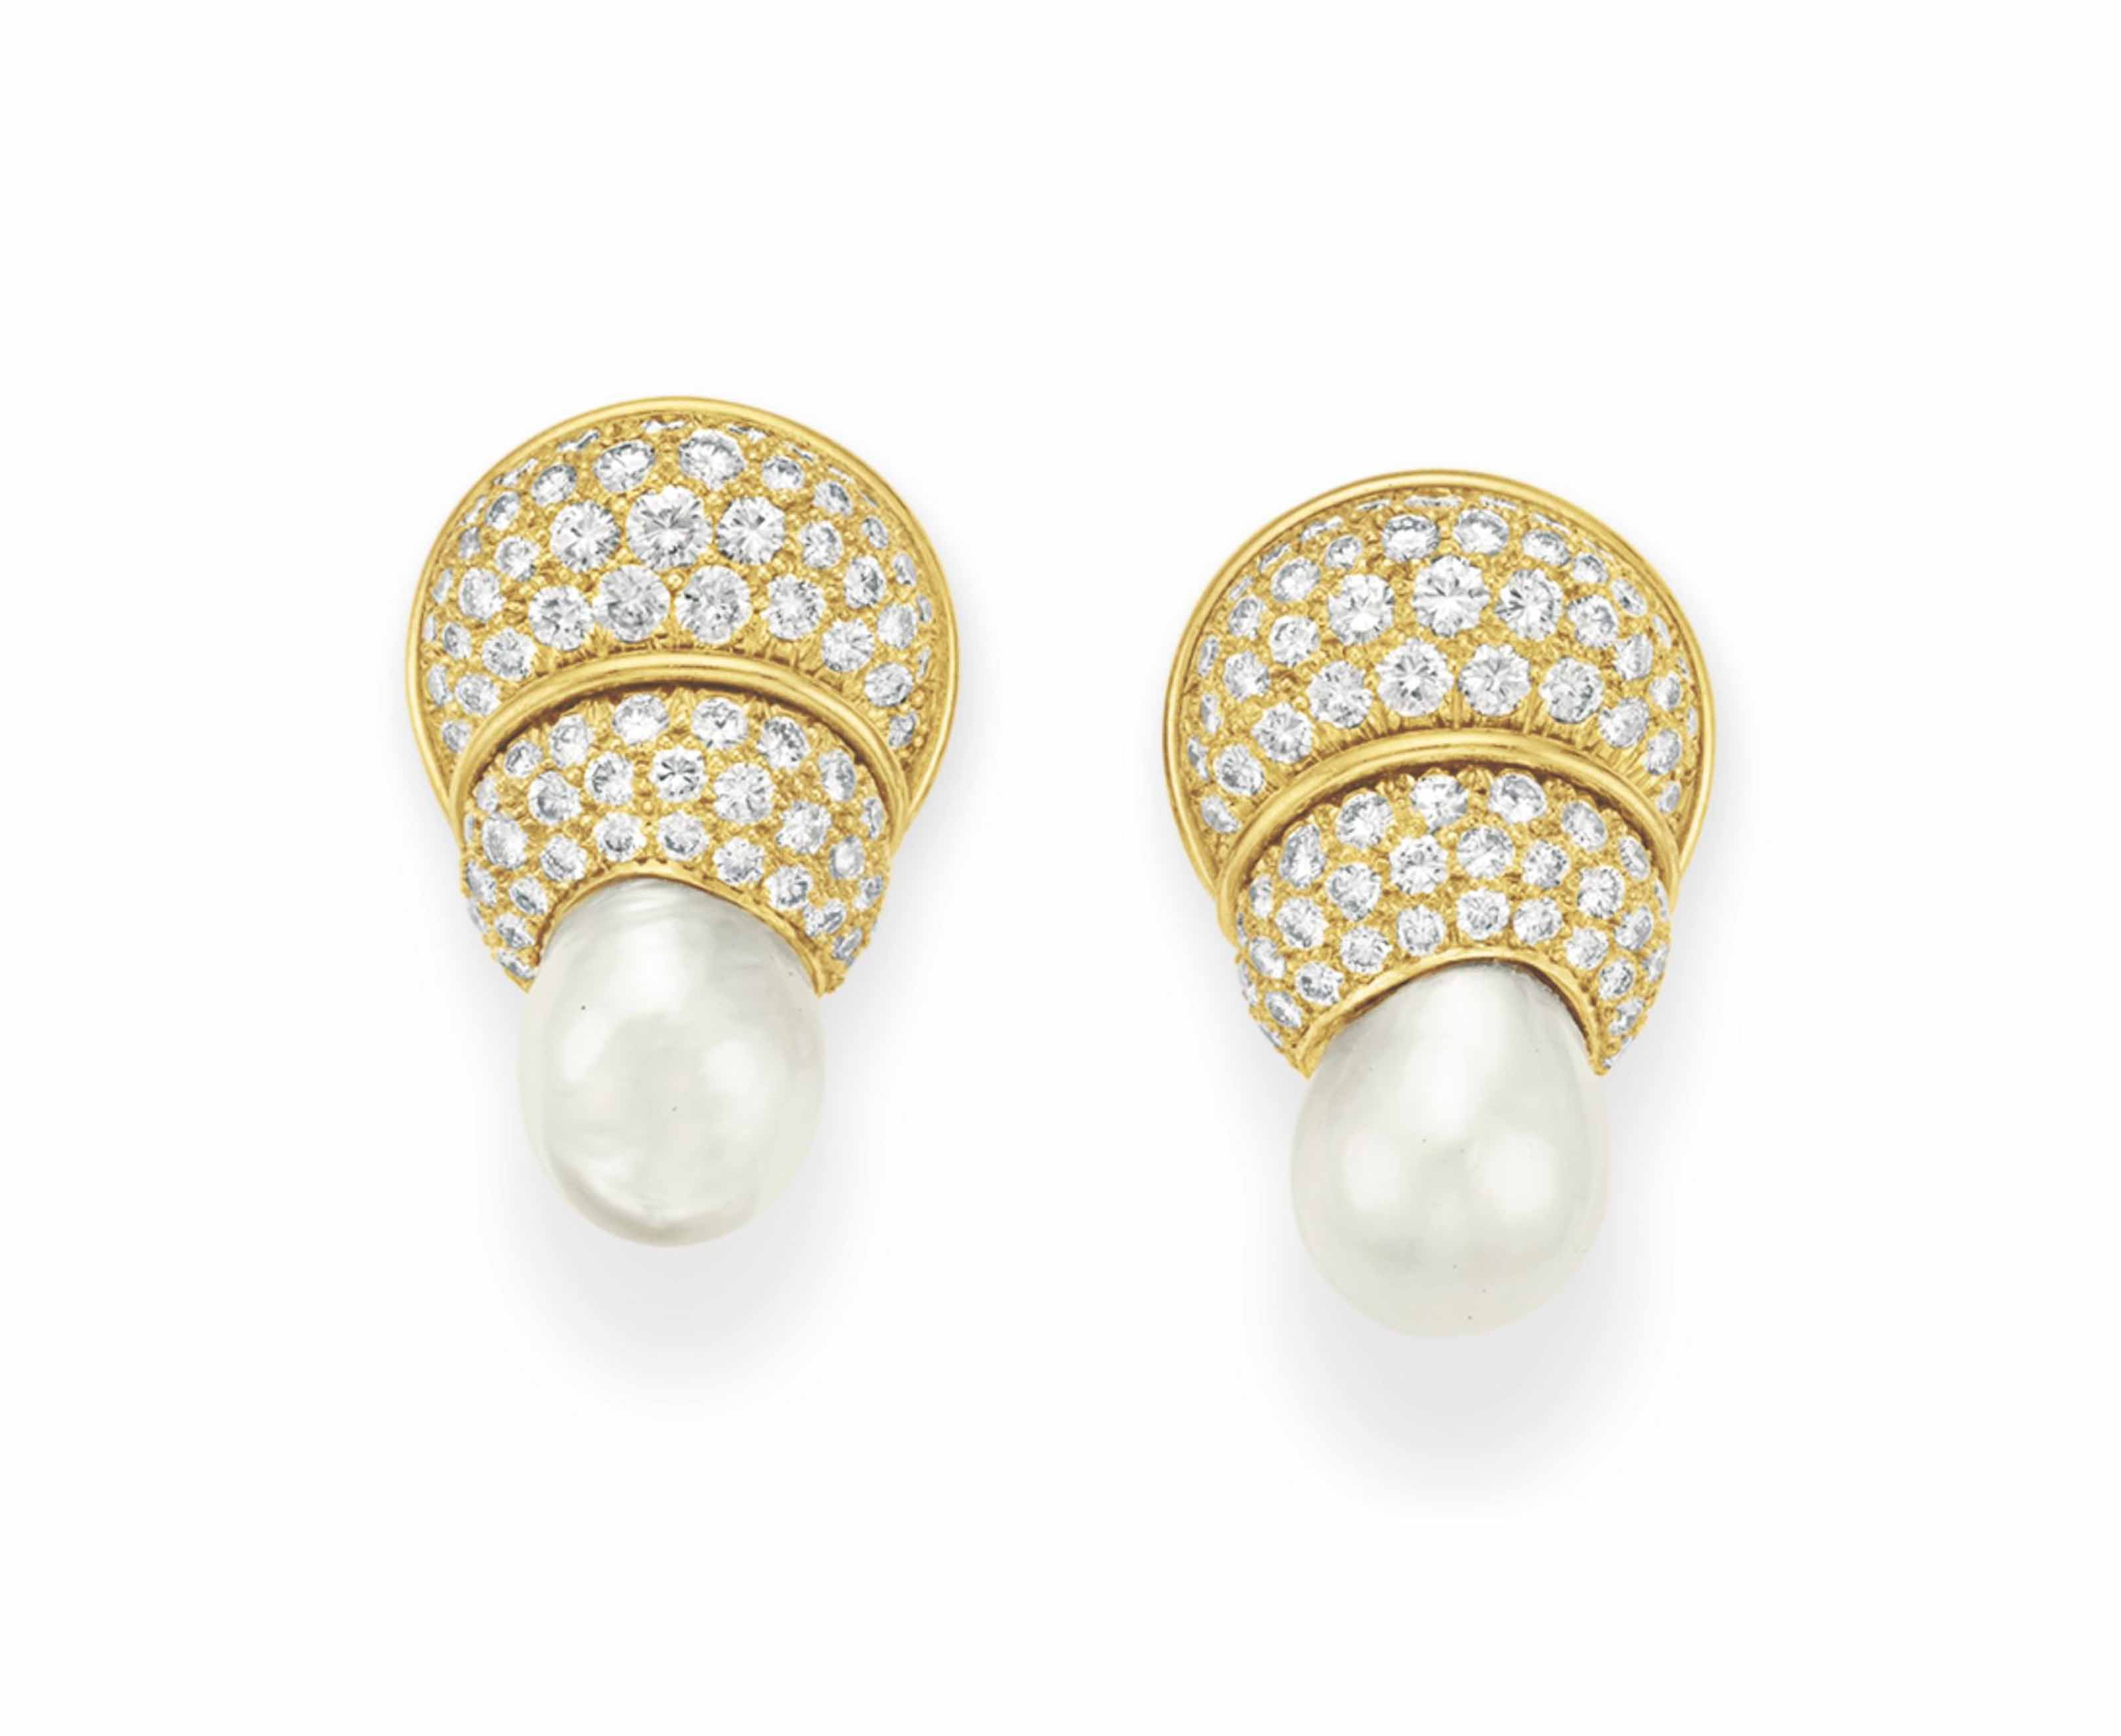 A PAIR OF CULTURED PEARL, DIAMOND AND GOLD EAR CLIPS, BY TAMBETTI